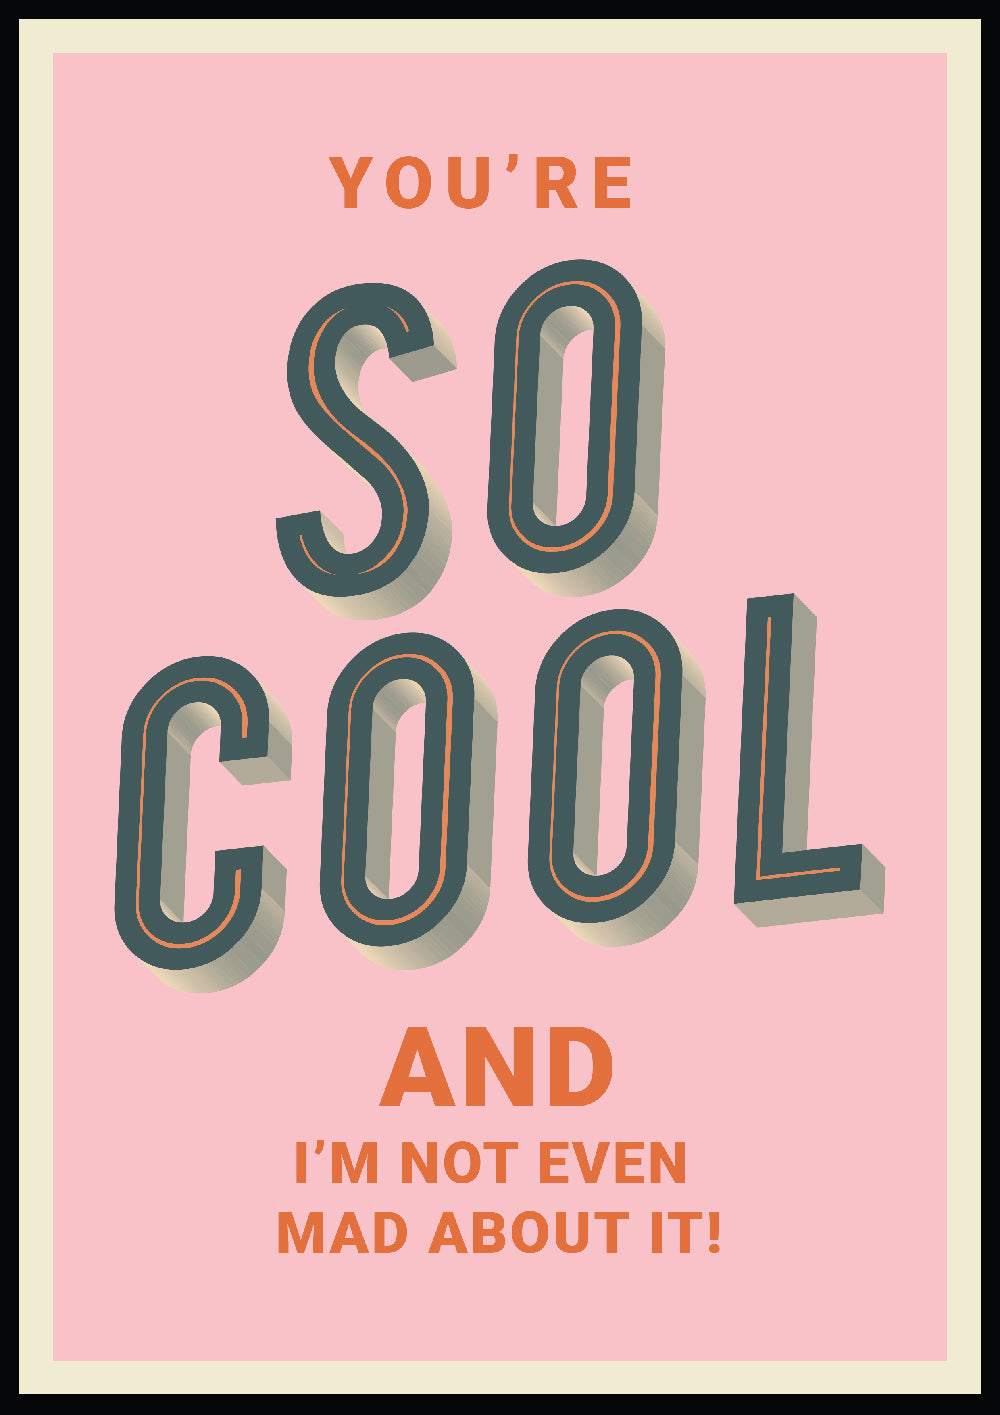 'You're so cool and I'm not even mad about it!' Print